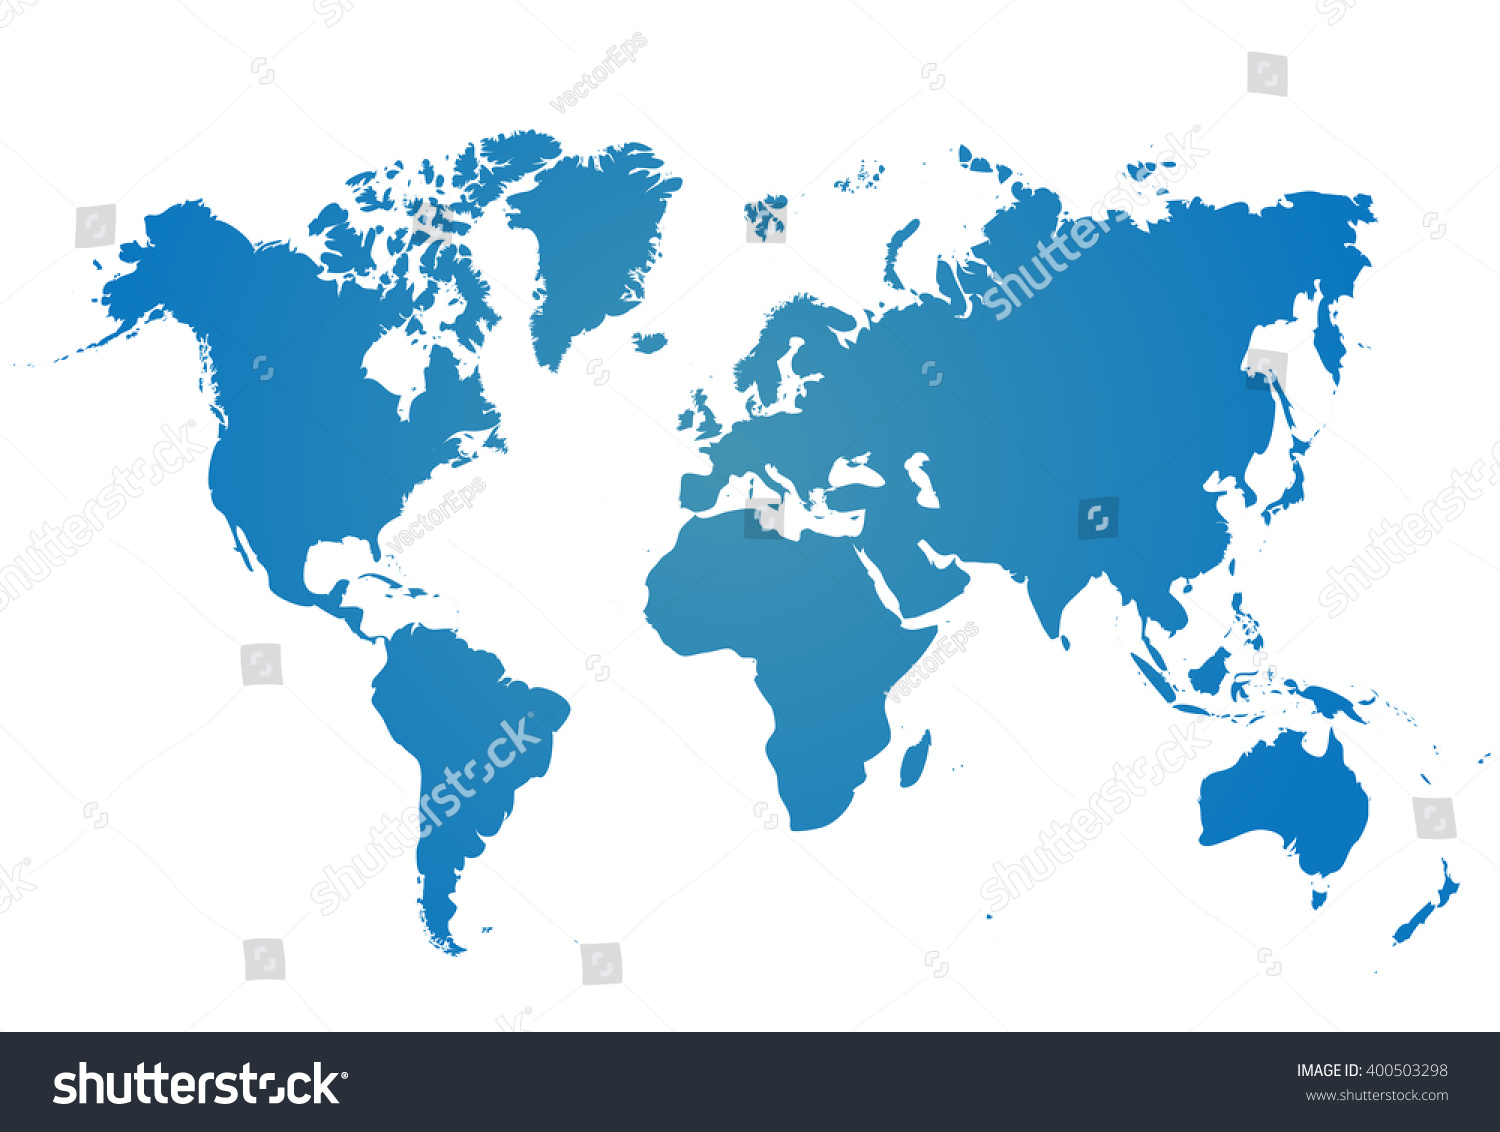 World map vector isolated on white stock vector 400503298 world map vector isolated on white background best popular template gumiabroncs Image collections